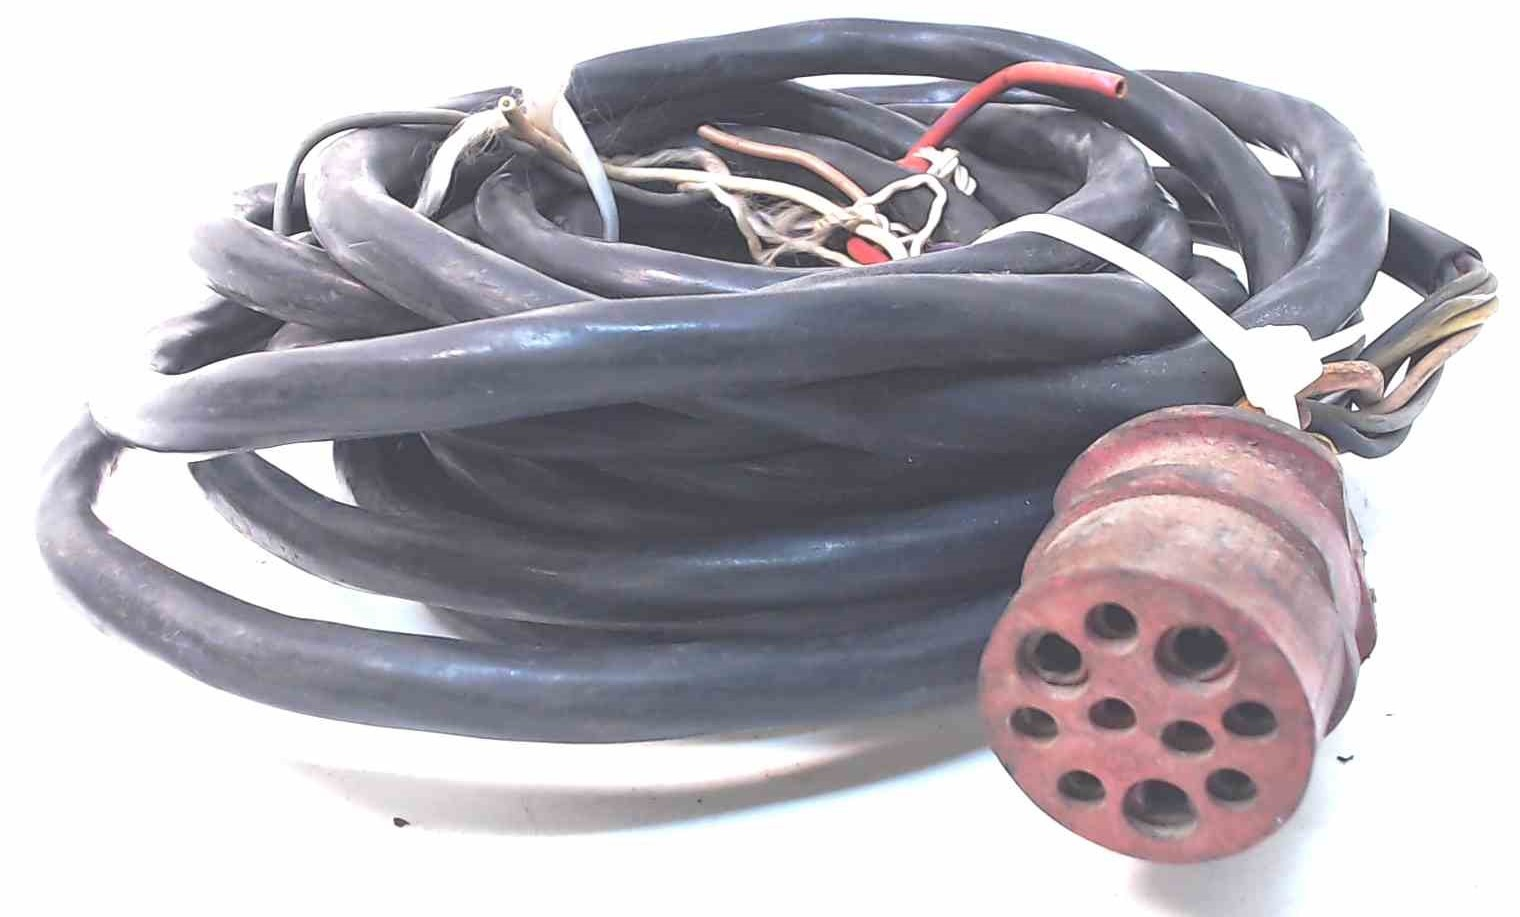 Johnson Evinrude OMC 20' Red Plug External Adapter Wiring Harness 10 on johnson neutral safety switch, johnson fuel tank, johnson hardware, johnson thermostat, johnson ignition switch,